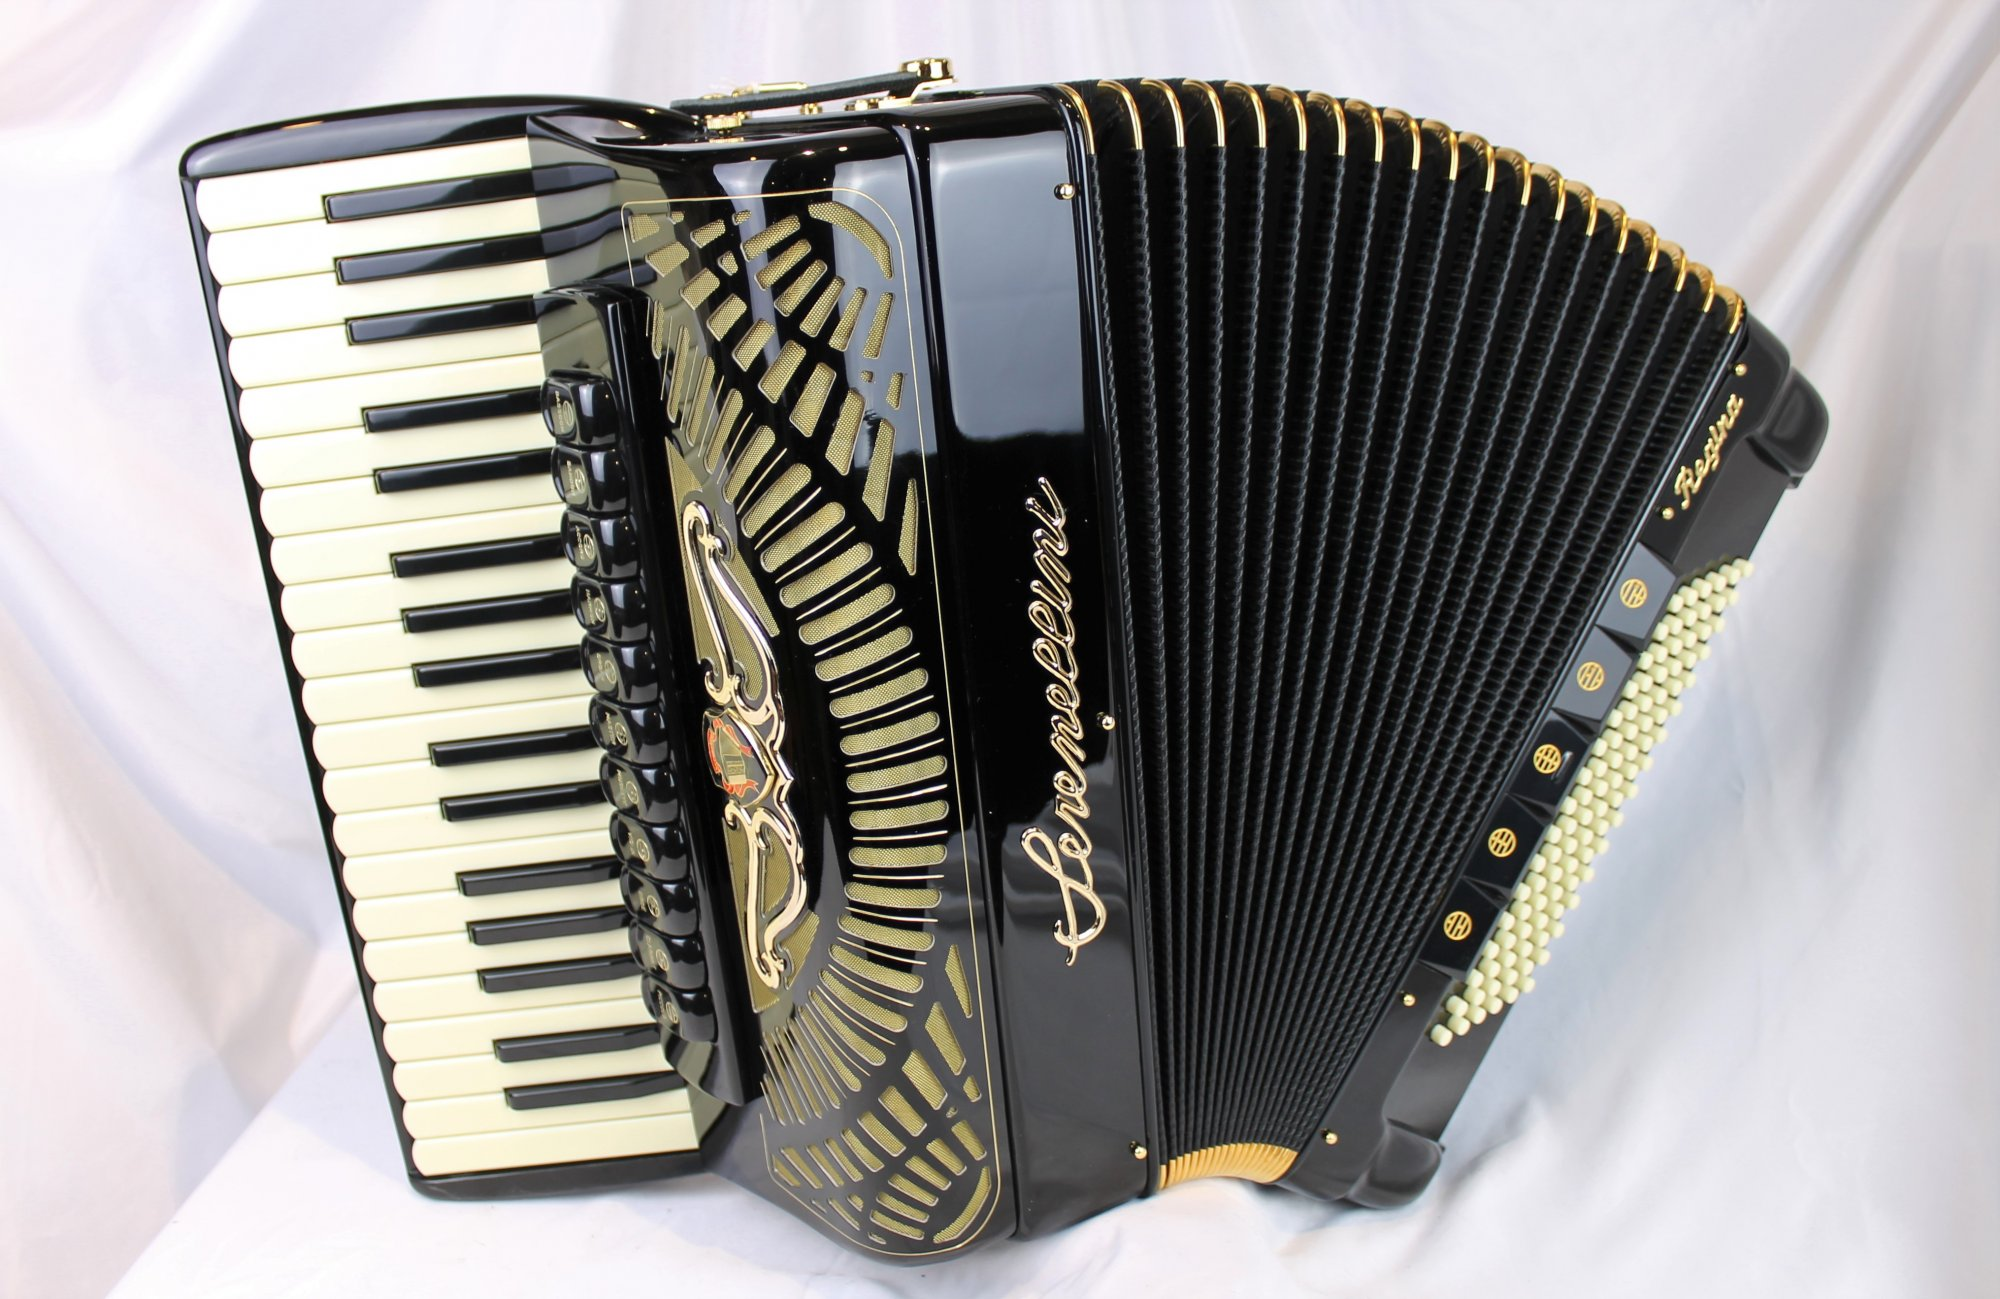 NEW Black Serenellini Regina Gold Piano Accordion Binci LMMH 37 96